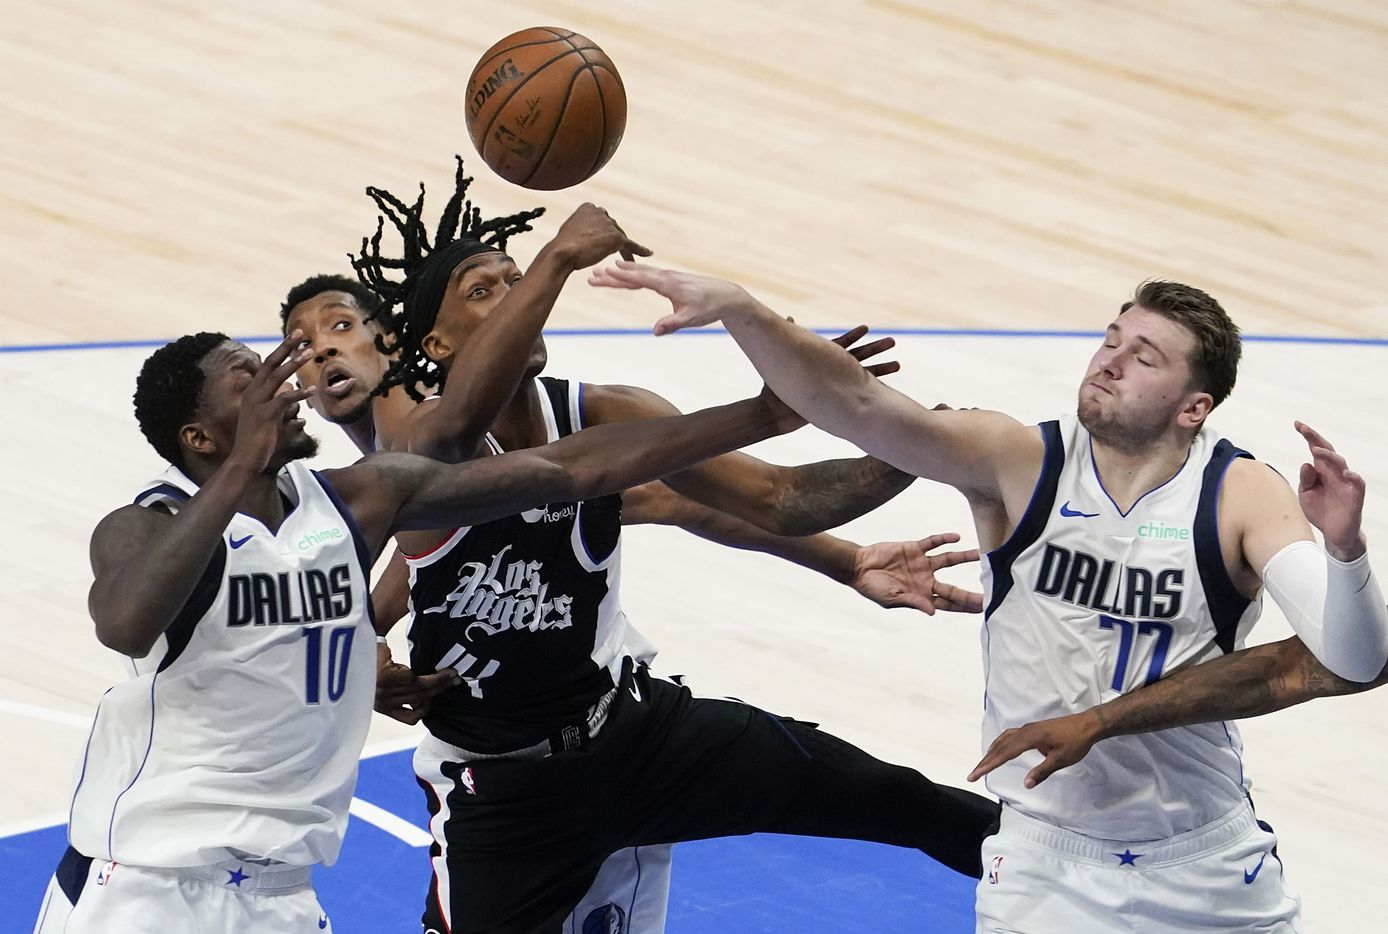 Dallas Mavericks guard Luka Doncic (77) an forward Dorian Finney-Smith (10) fight for rebound against LA Clippers guard Terance Mann (14) during the third quarter of an NBA playoff basketball game at American Airlines Center on Sunday, May 30, 2021, in Dallas.